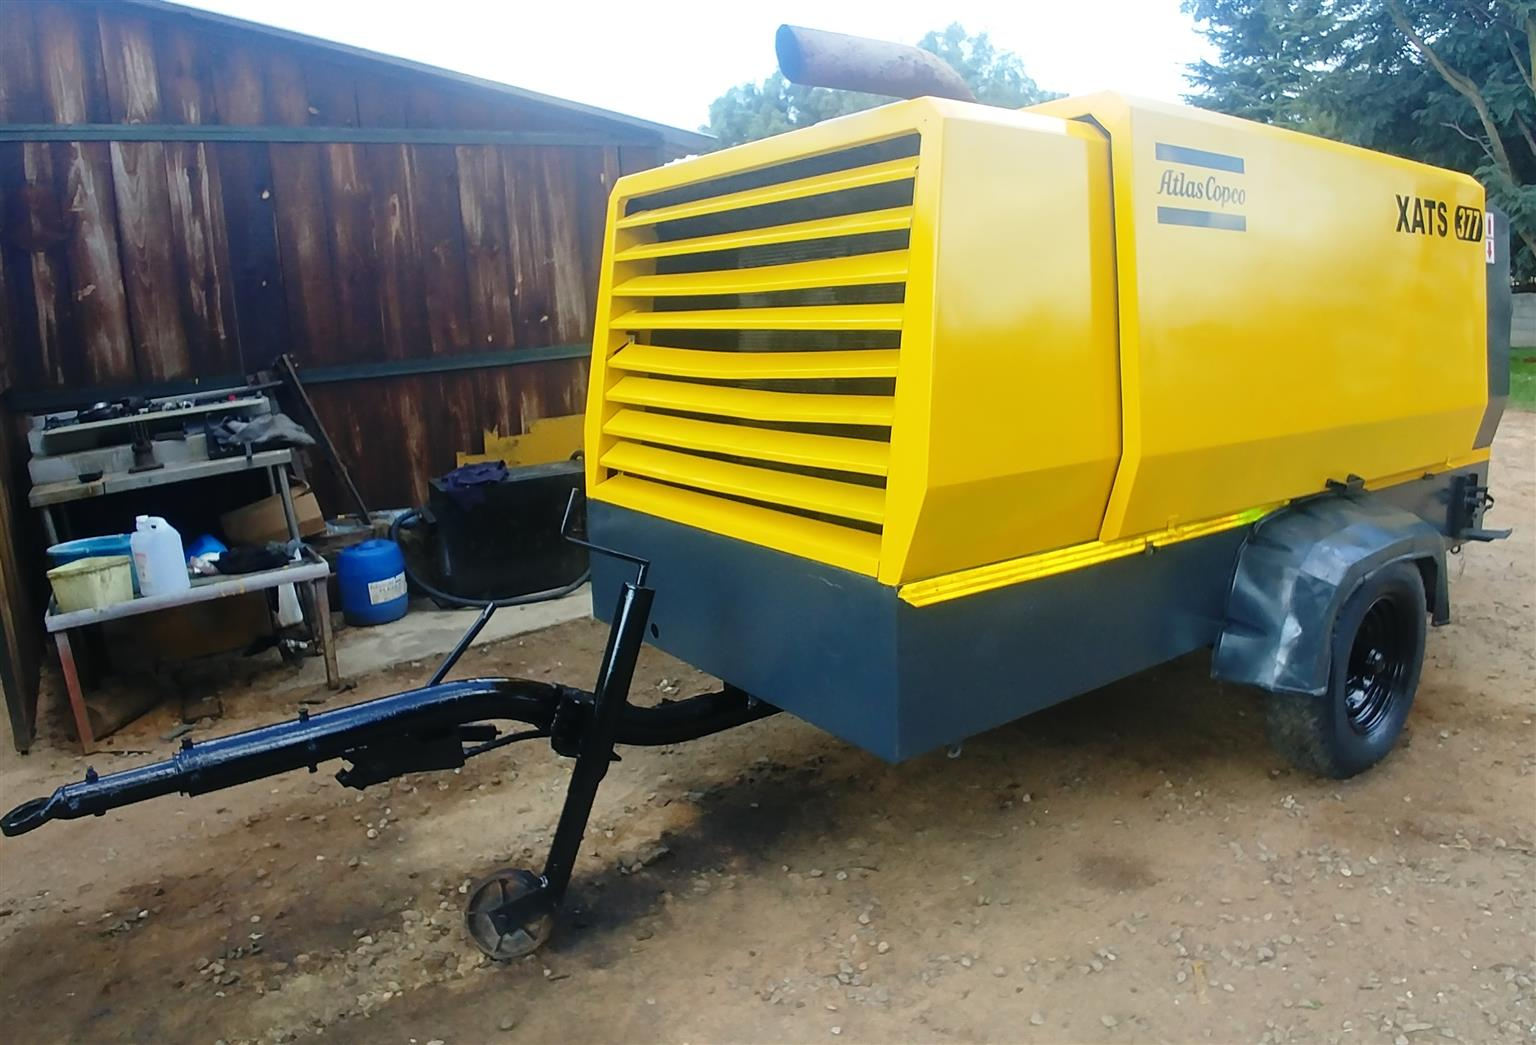 Mobile Air Compressor >> Atlas Copco 770cfm 10 Bar Mobile Air Compressor Xats377 Junk Mail